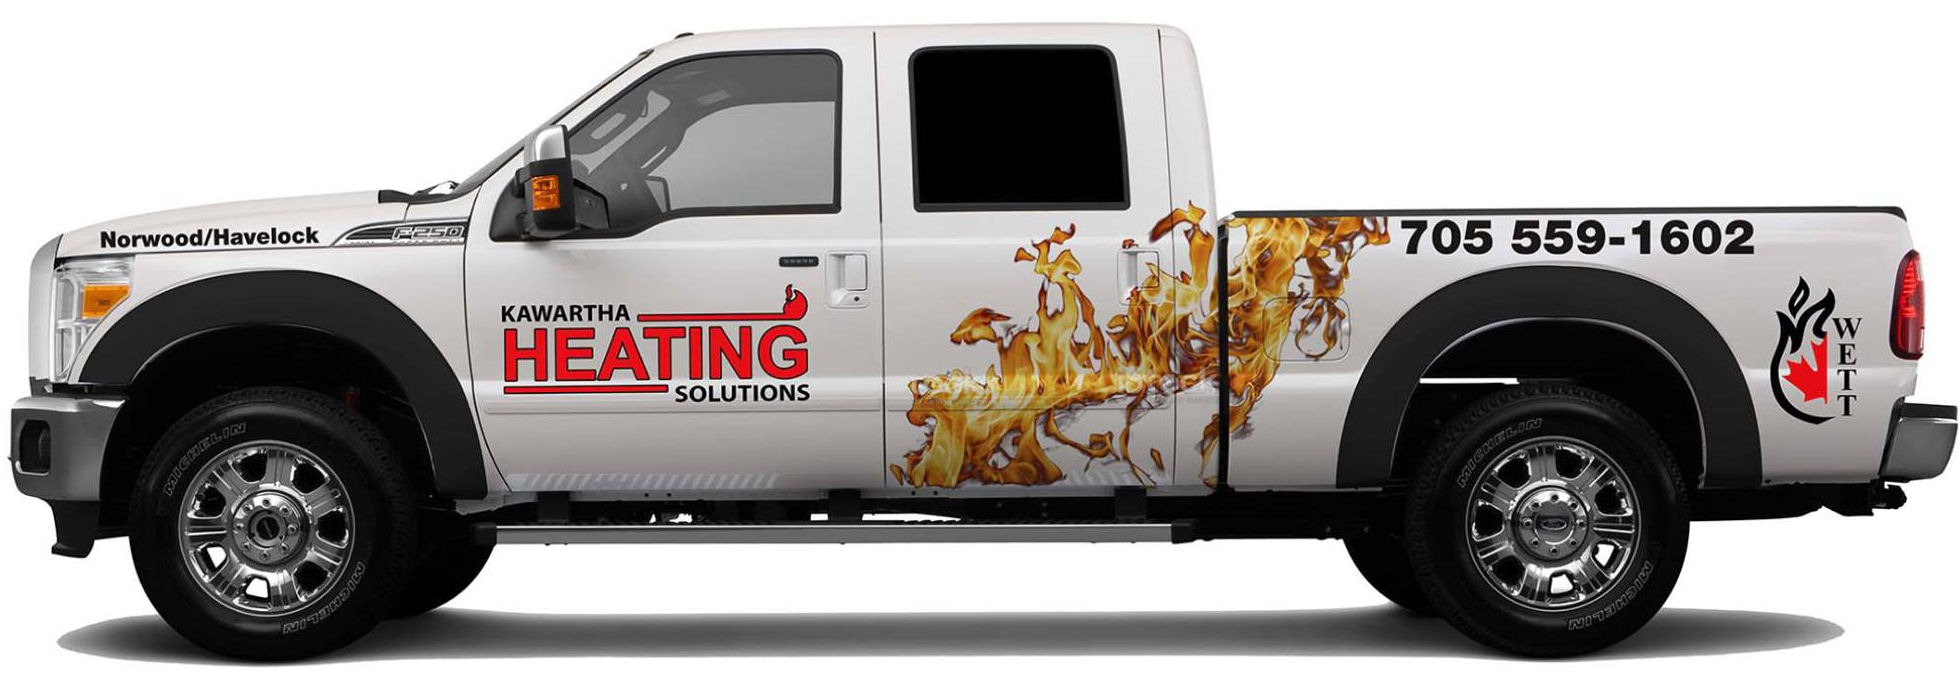 Kawartha Heating Solutions Truck